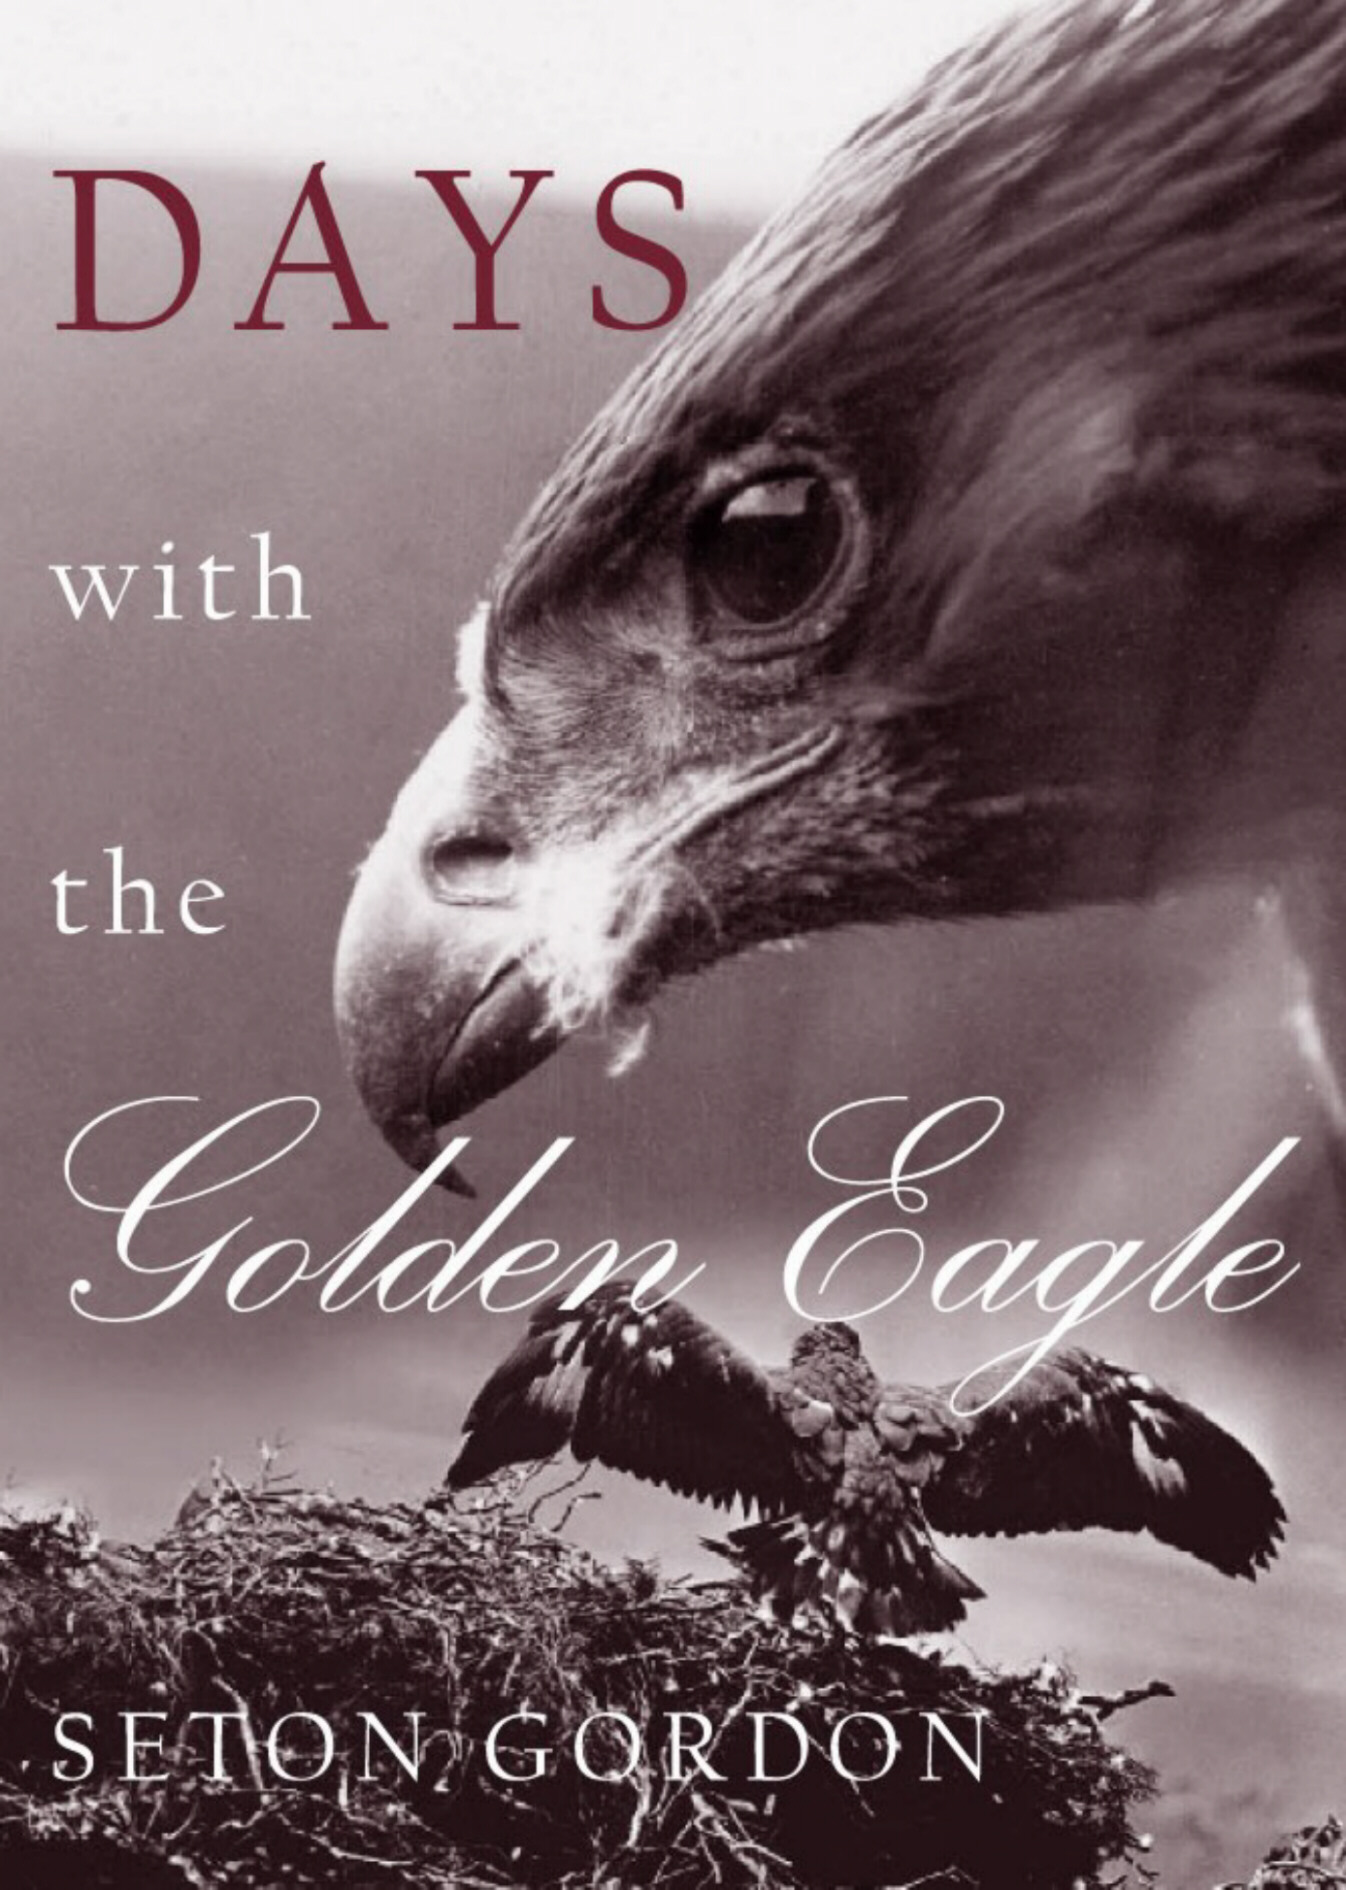 Days with the Golden Eagle, Seton Gordon